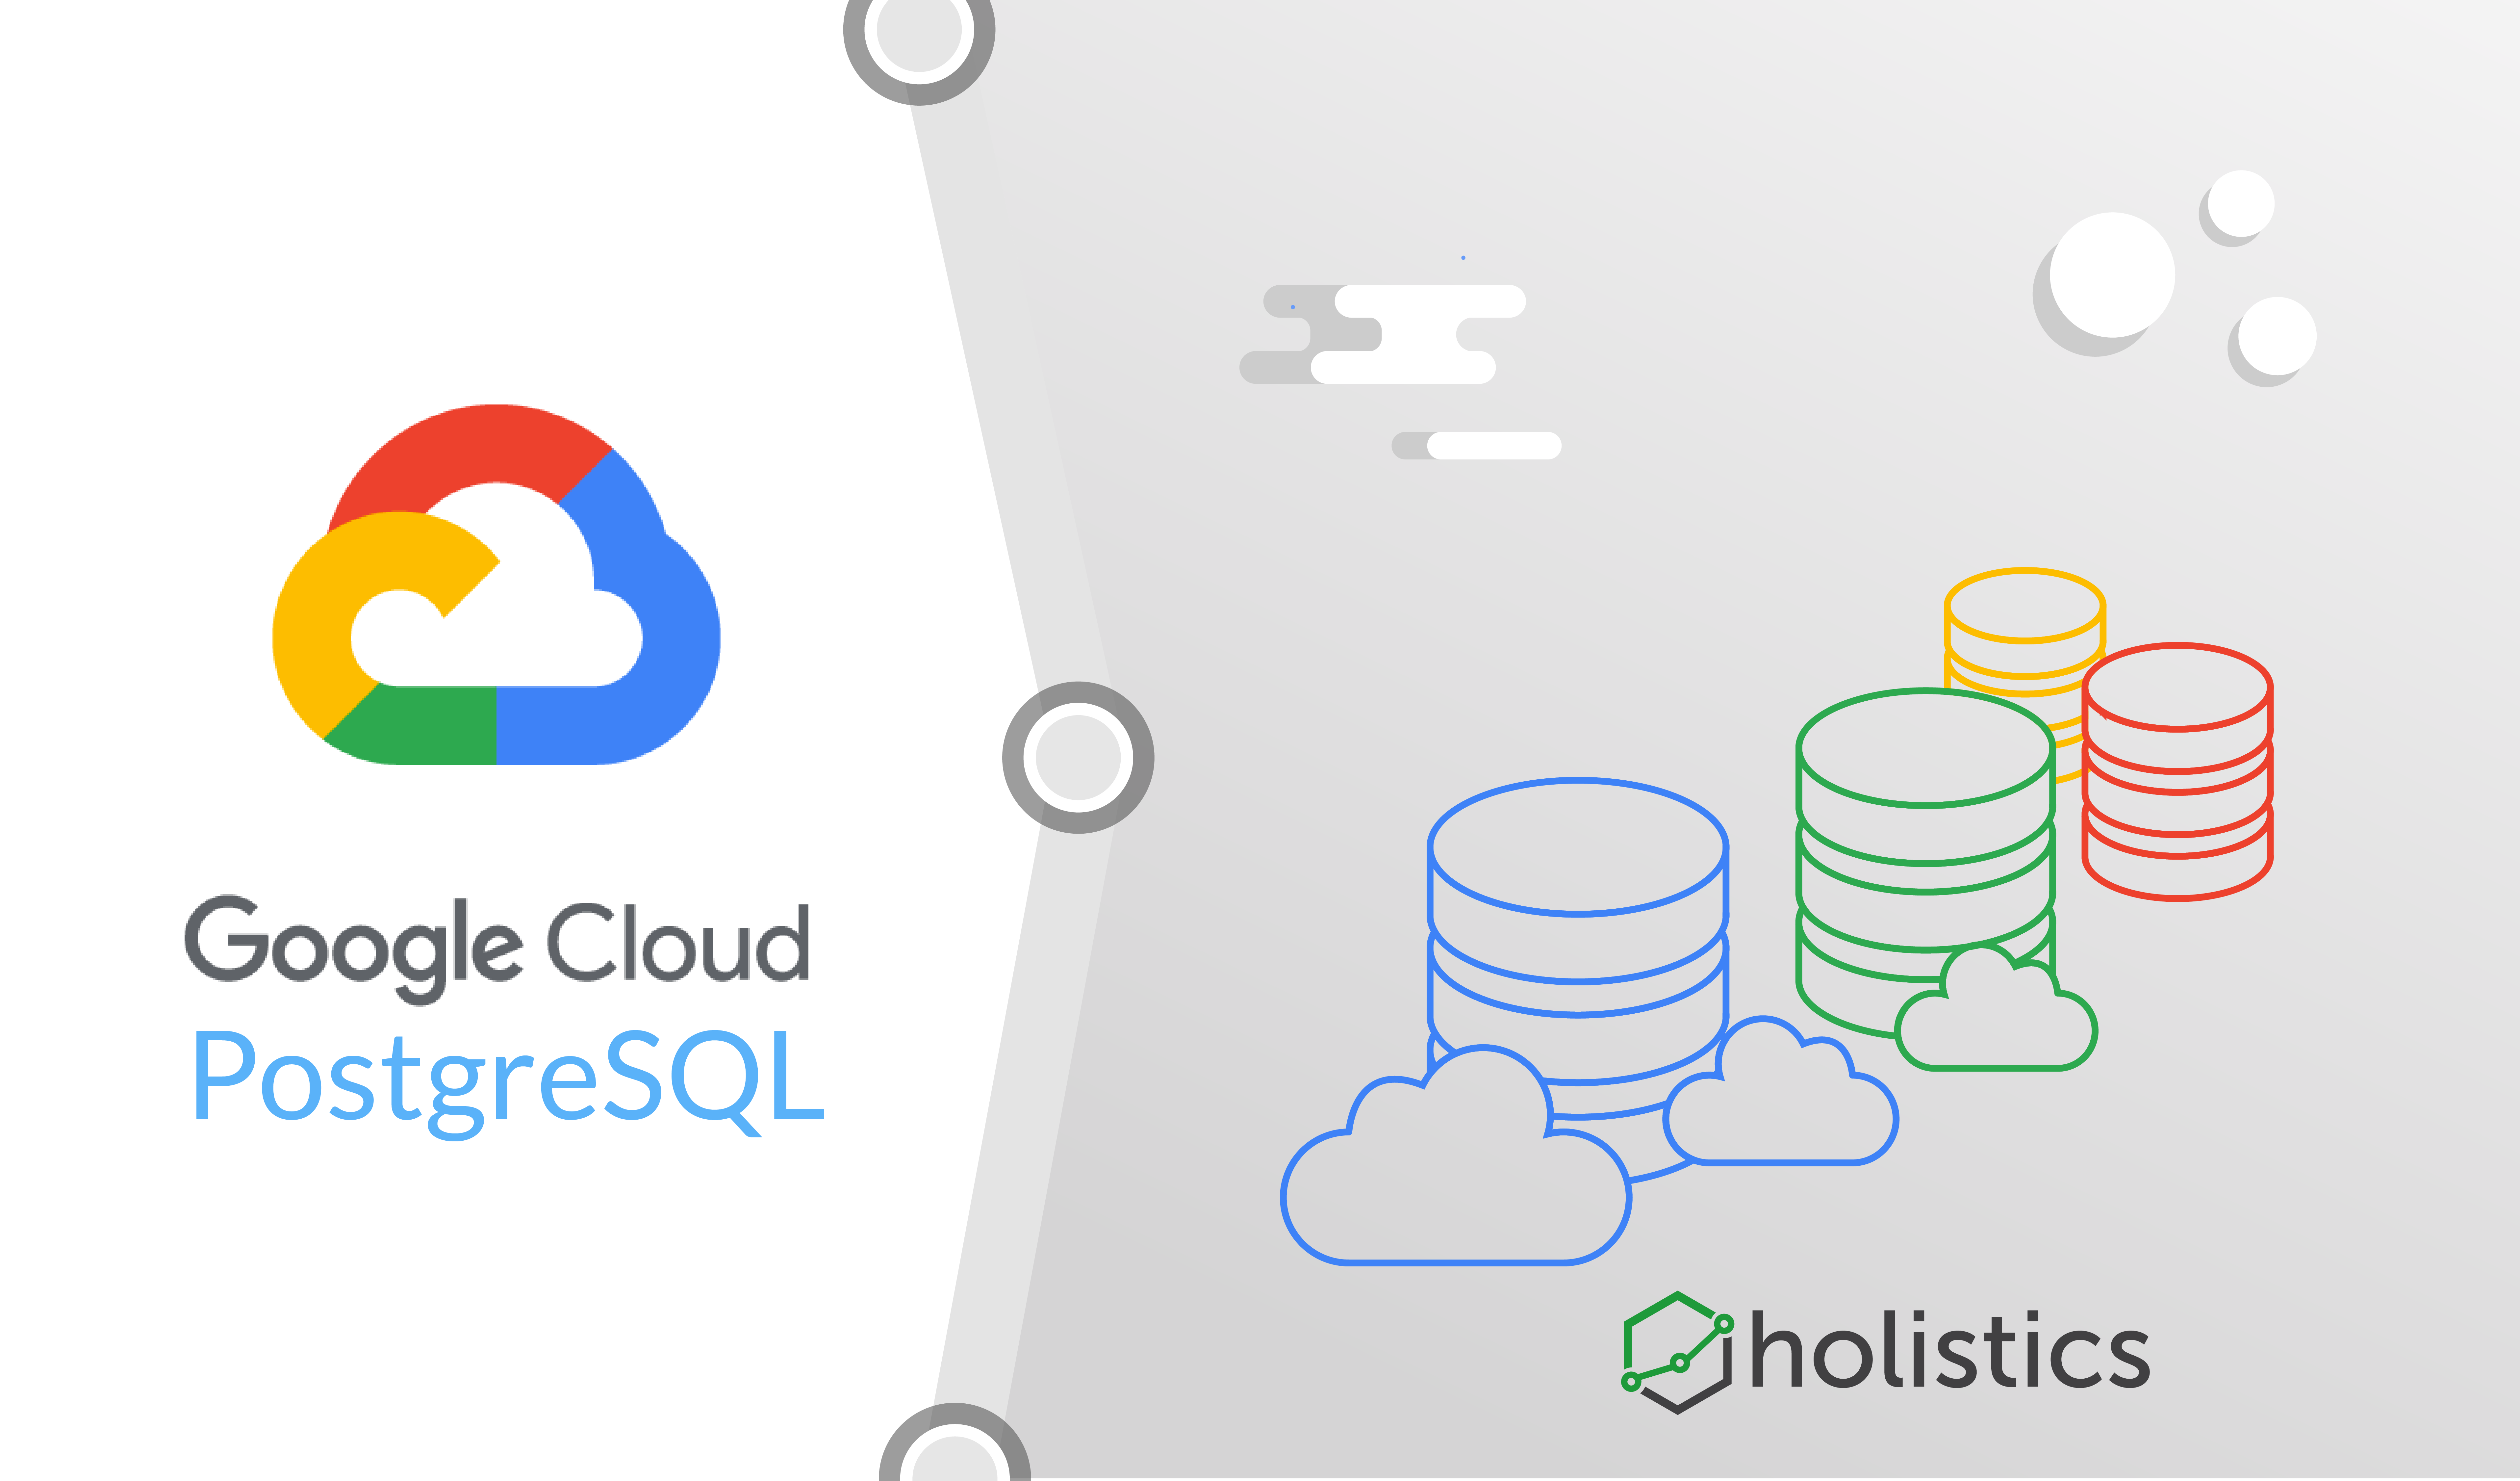 How to Set-up your own Google Cloud PostgreSQL database and Start Automating your Business Intelligence Operations using Holistics